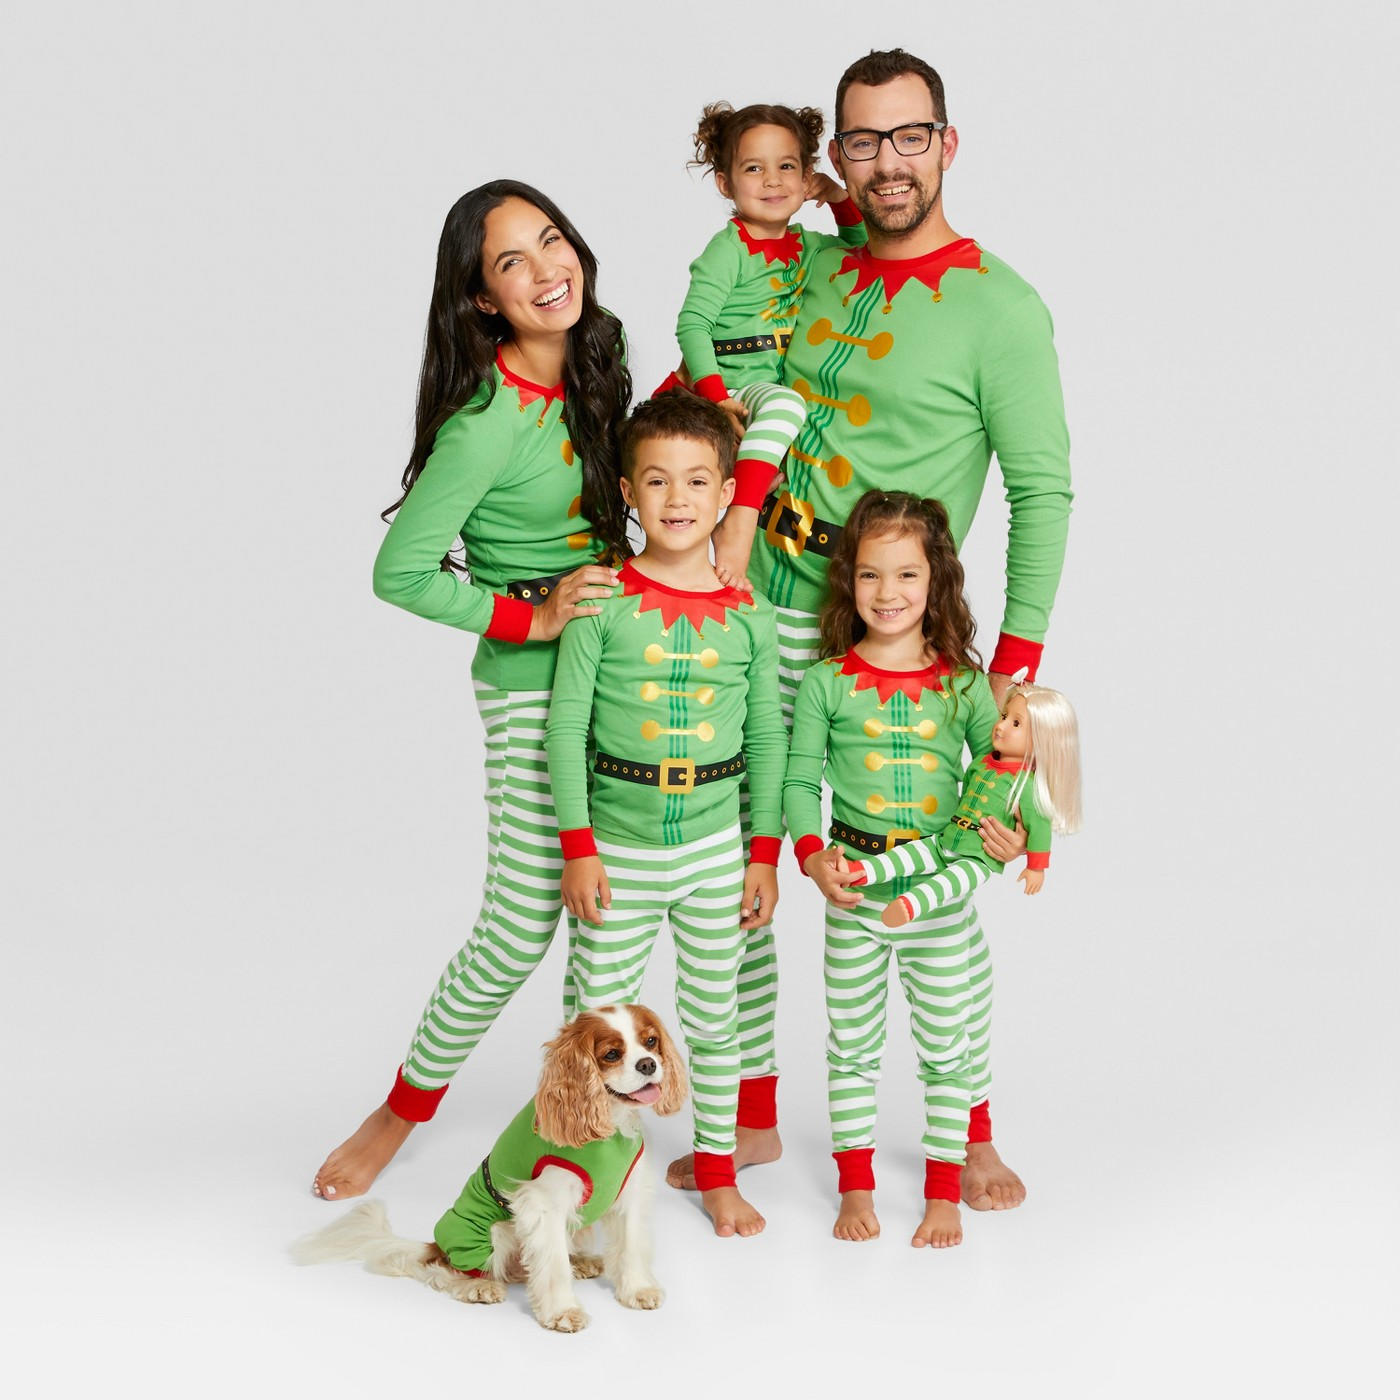 Even better, through November 21st, you can snag $10 off your $40+ purchase of apparel, shoes \u0026 accessories both in-store and online. WOW! Matching Family Pajama Sets as Low $8.50 Each at Target